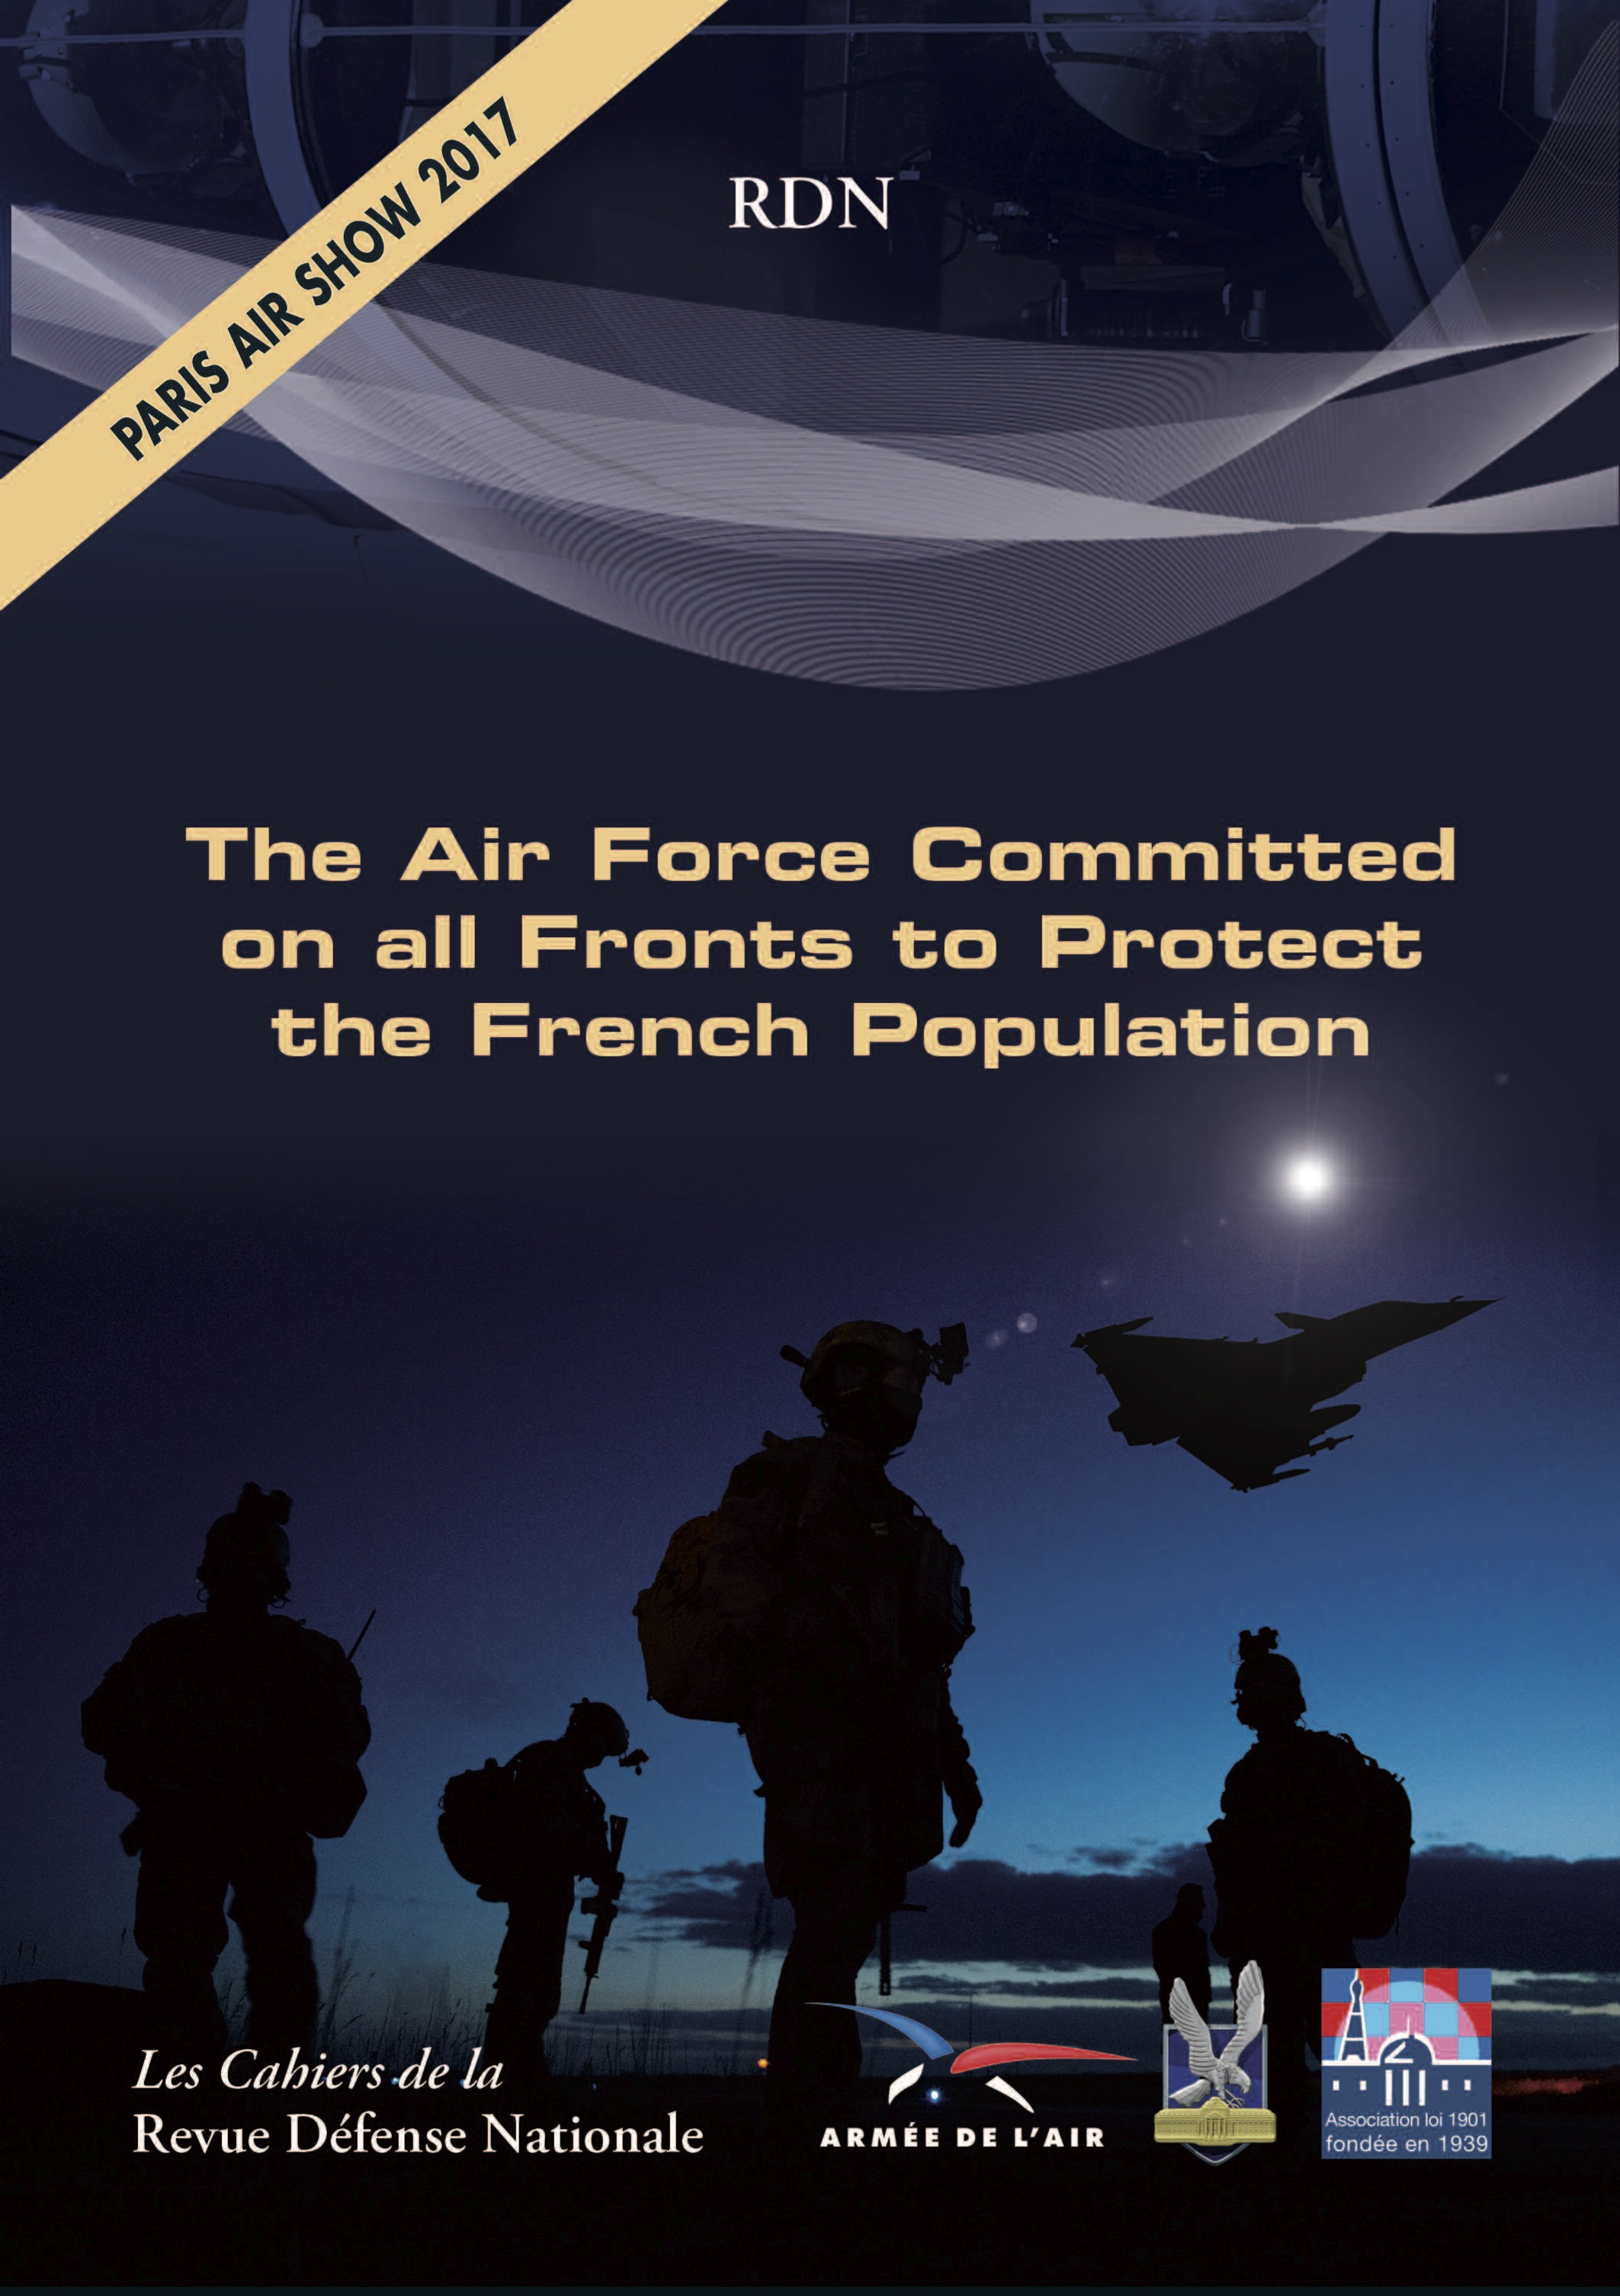 International Paris Air Show – Le Bourget 2017 - The Air Force Committed on all Fronts to Protect the French Population